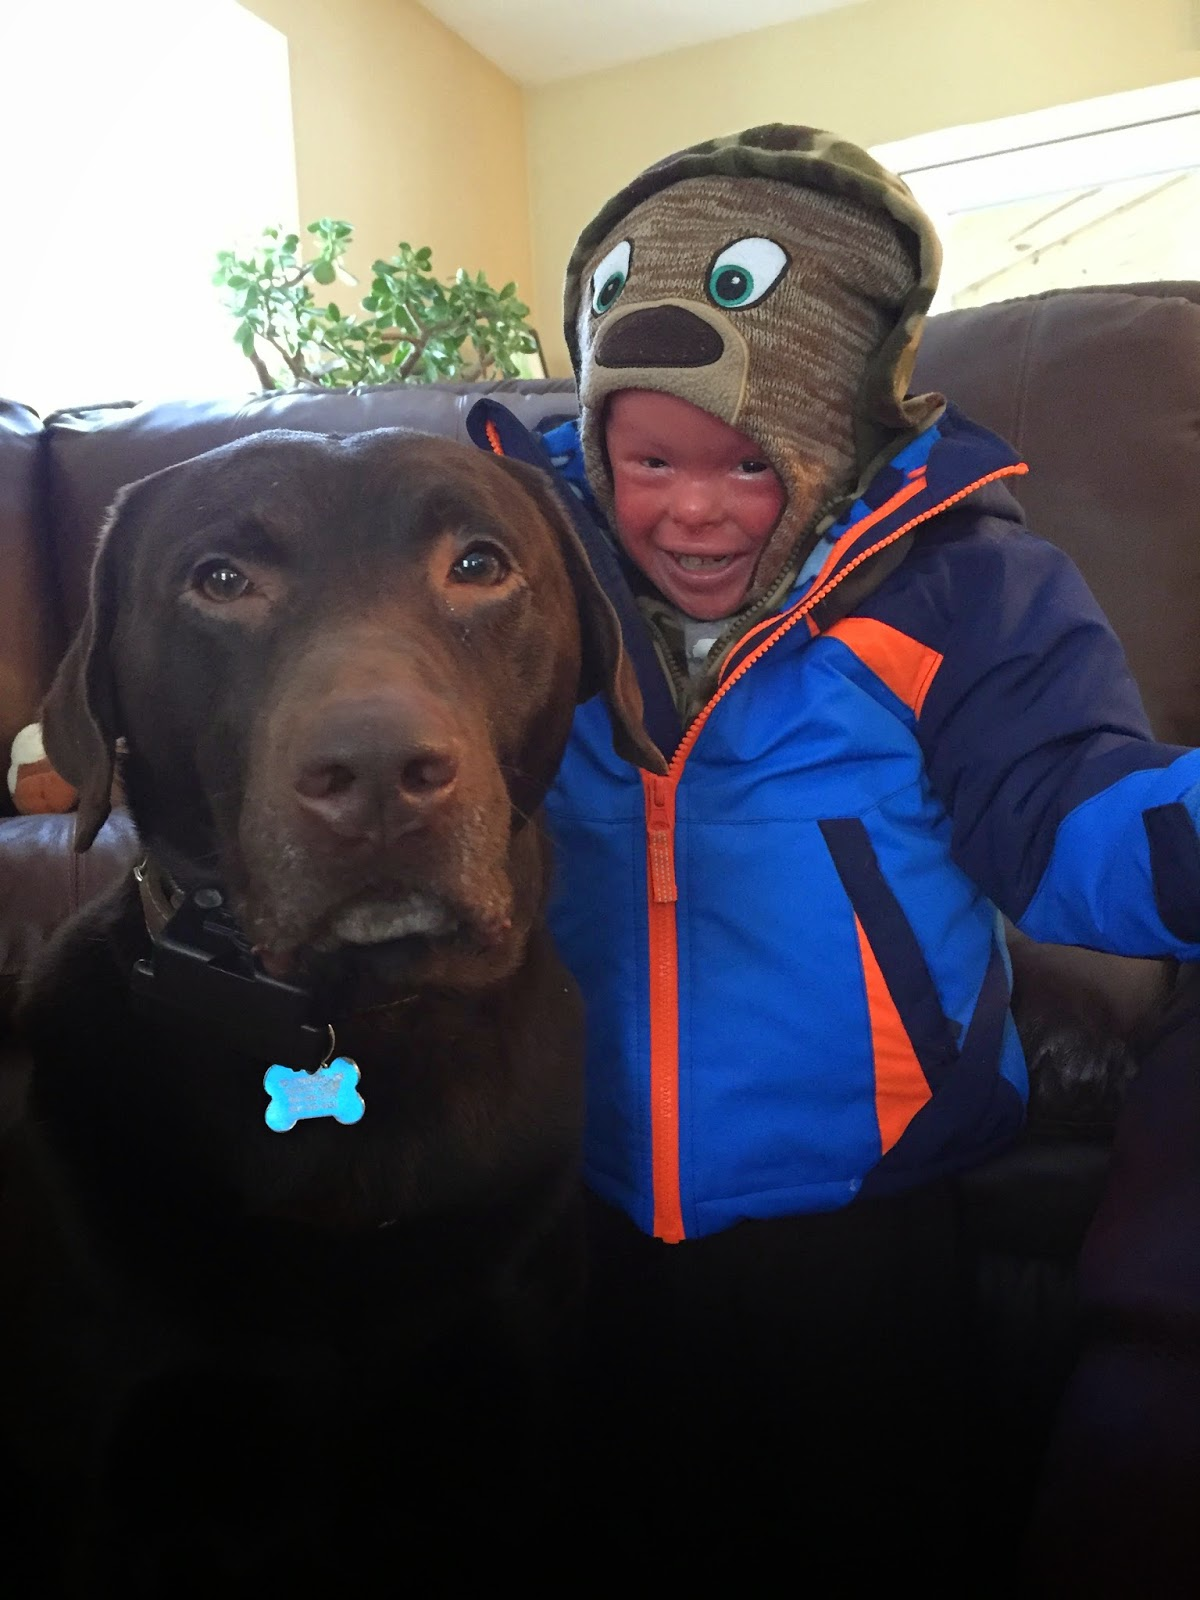 Evan, who has Harlequin Ichthyosis, with his dog Bruli